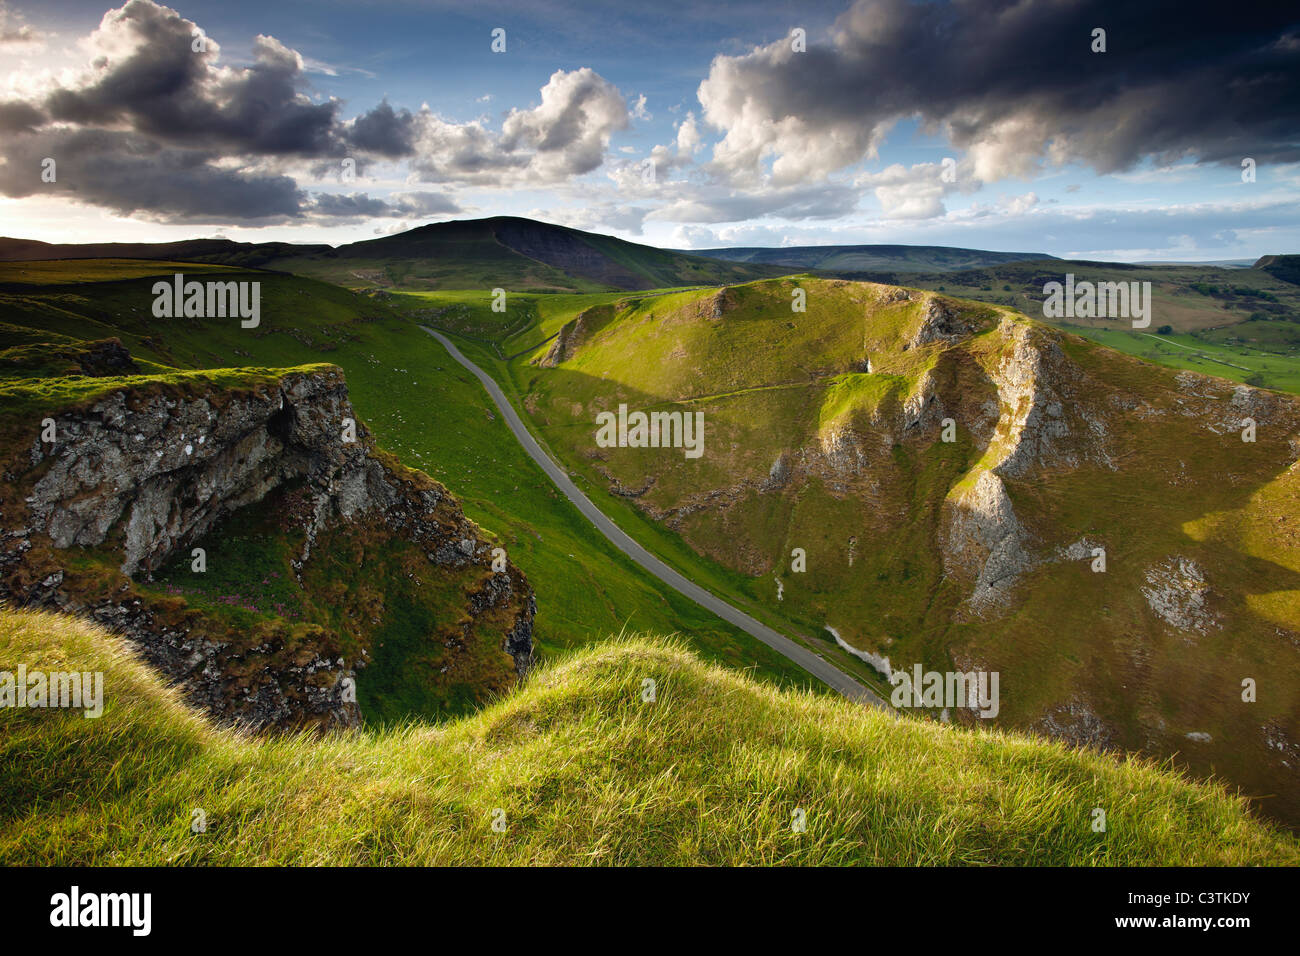 Taken from Winnats Pass looking to Mam Tor in the Peak District National Park - Stock Image